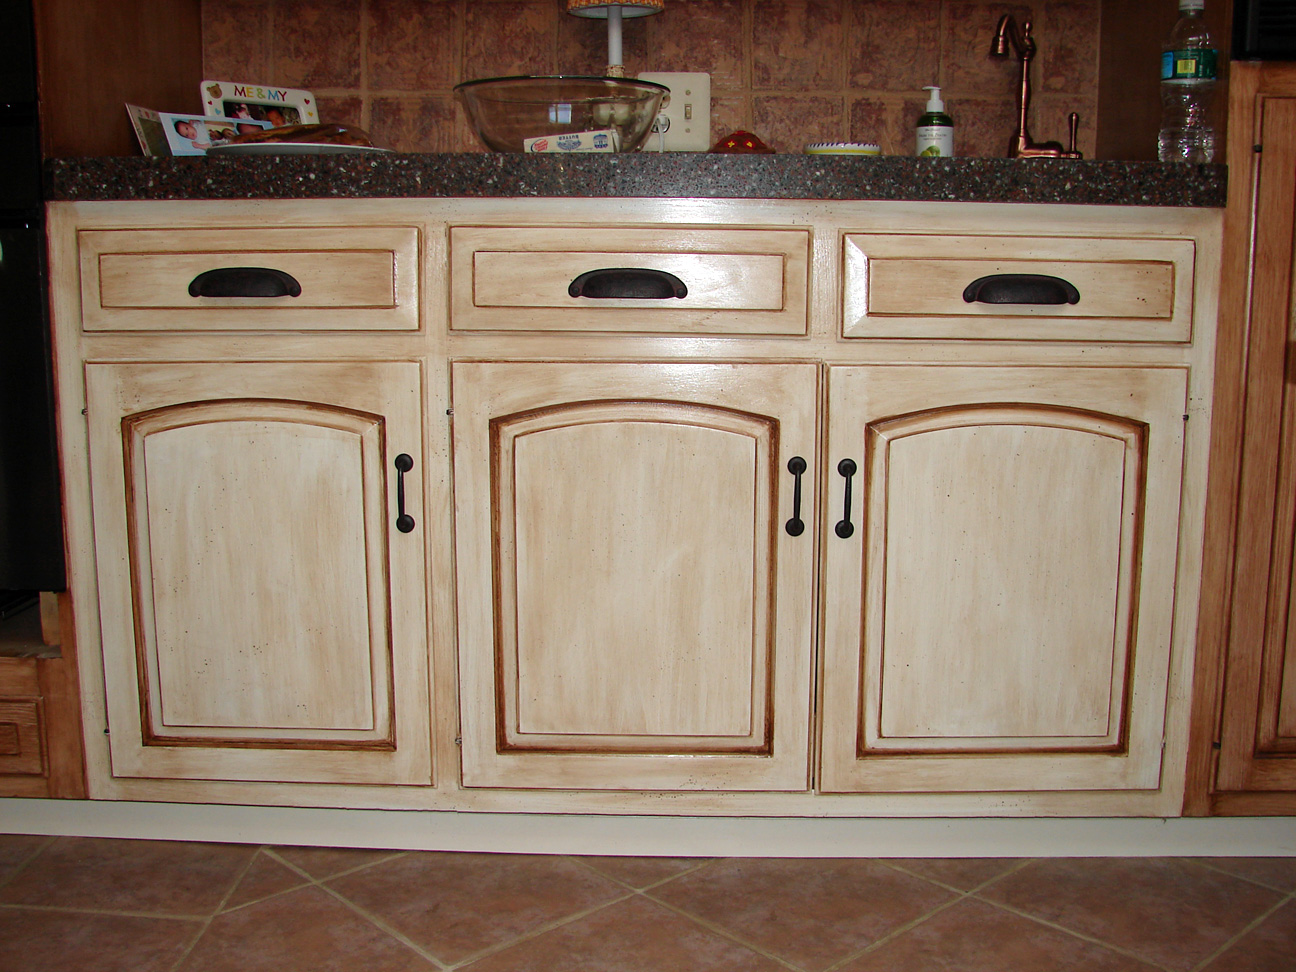 Decorative effect of walls furniture kitchen cabinets for Distressed kitchen cabinets